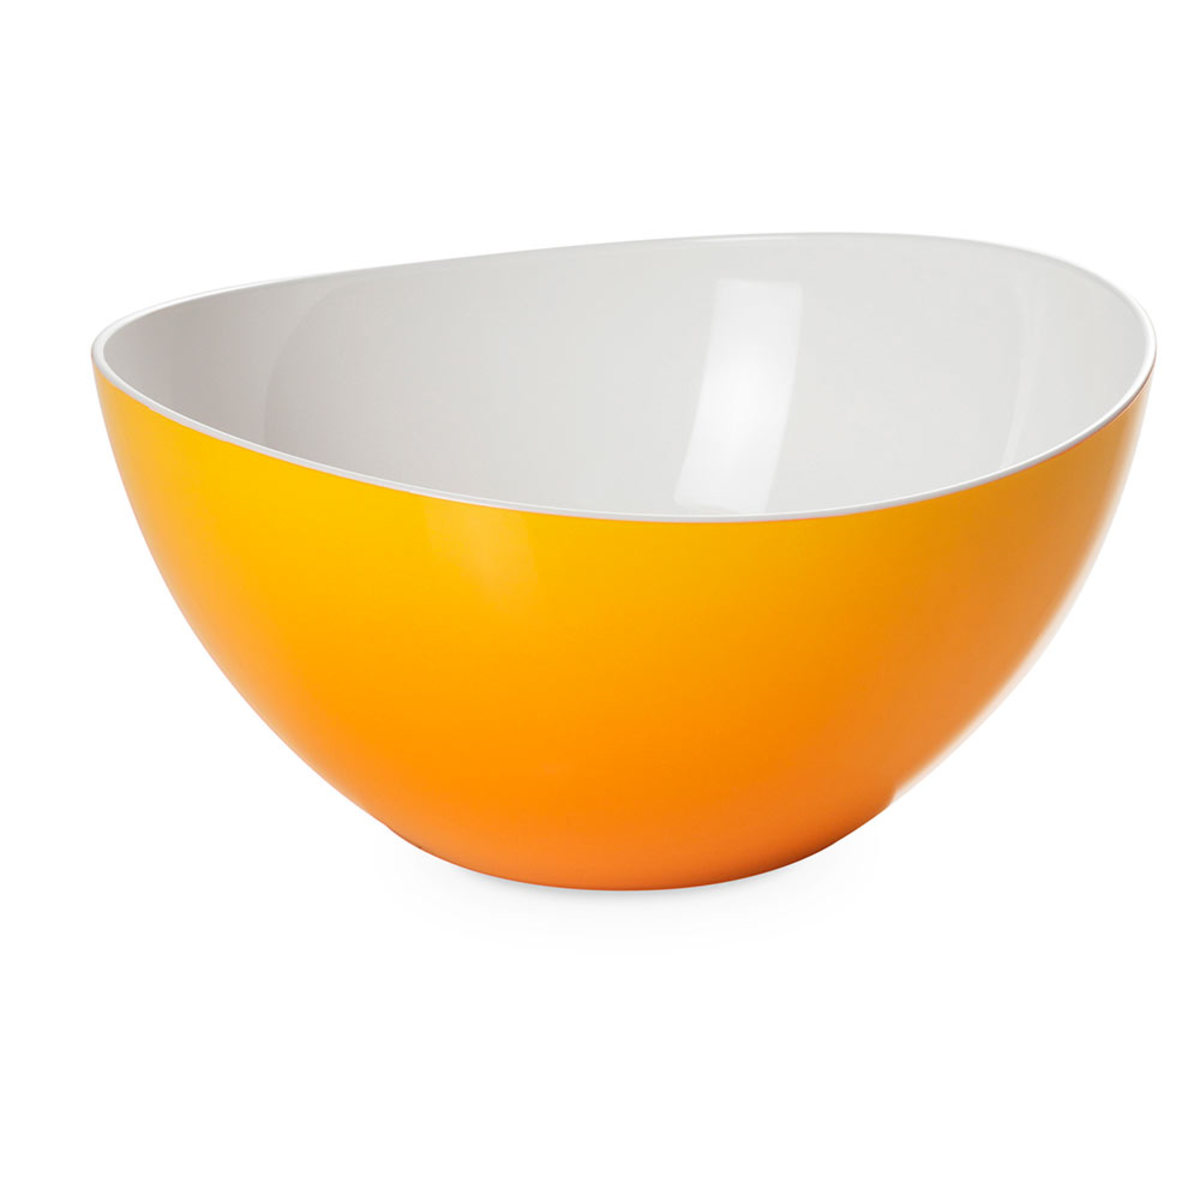 24cm Salad Bowl - YELLOW (Made in Italy)